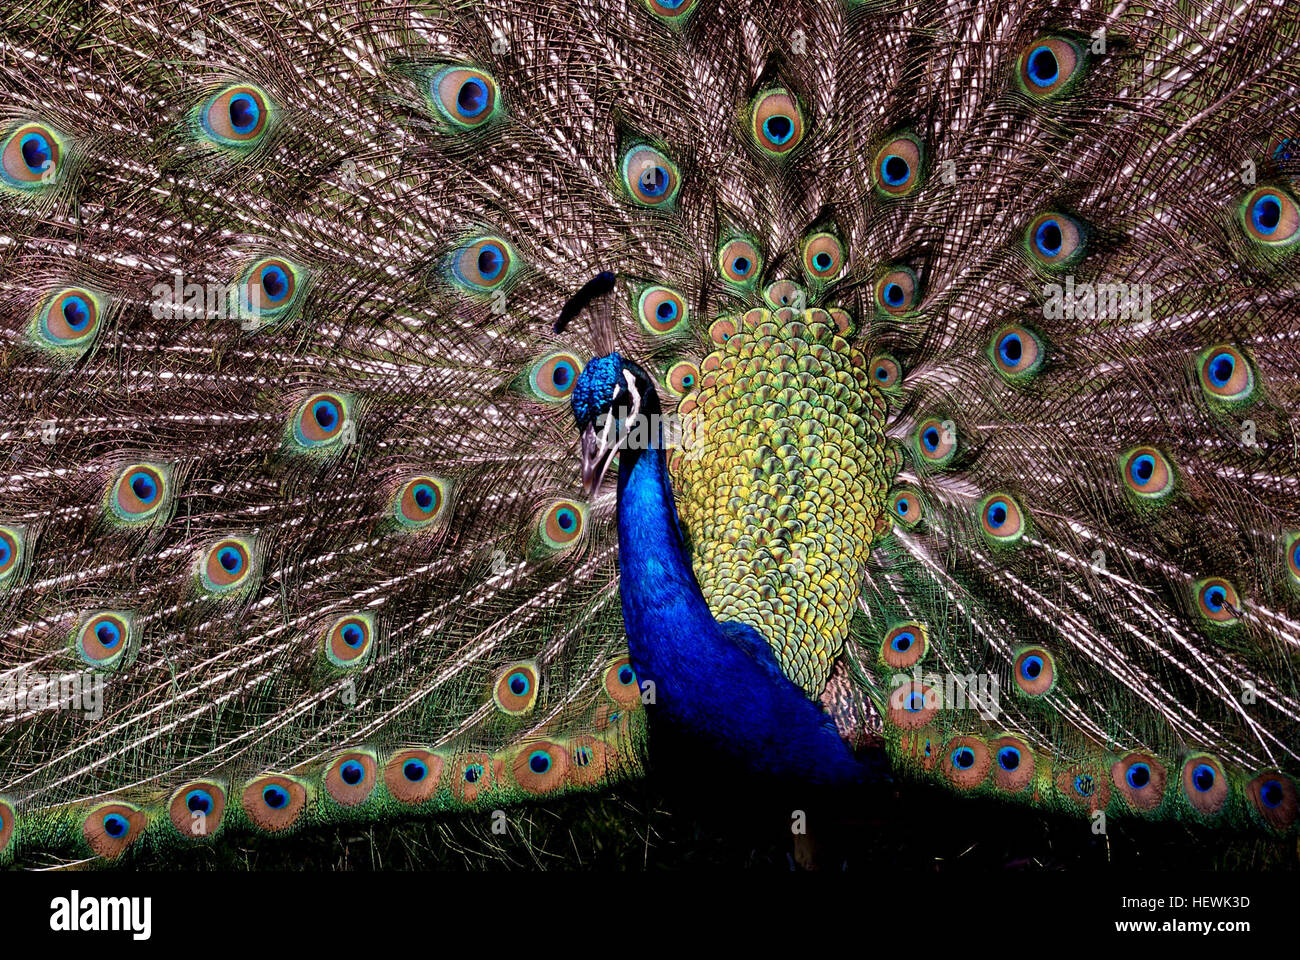 Peafowl are two Asiatic and one African species of flying bird in the genus Pavo of the pheasant family, Phasianidae, - Stock Image